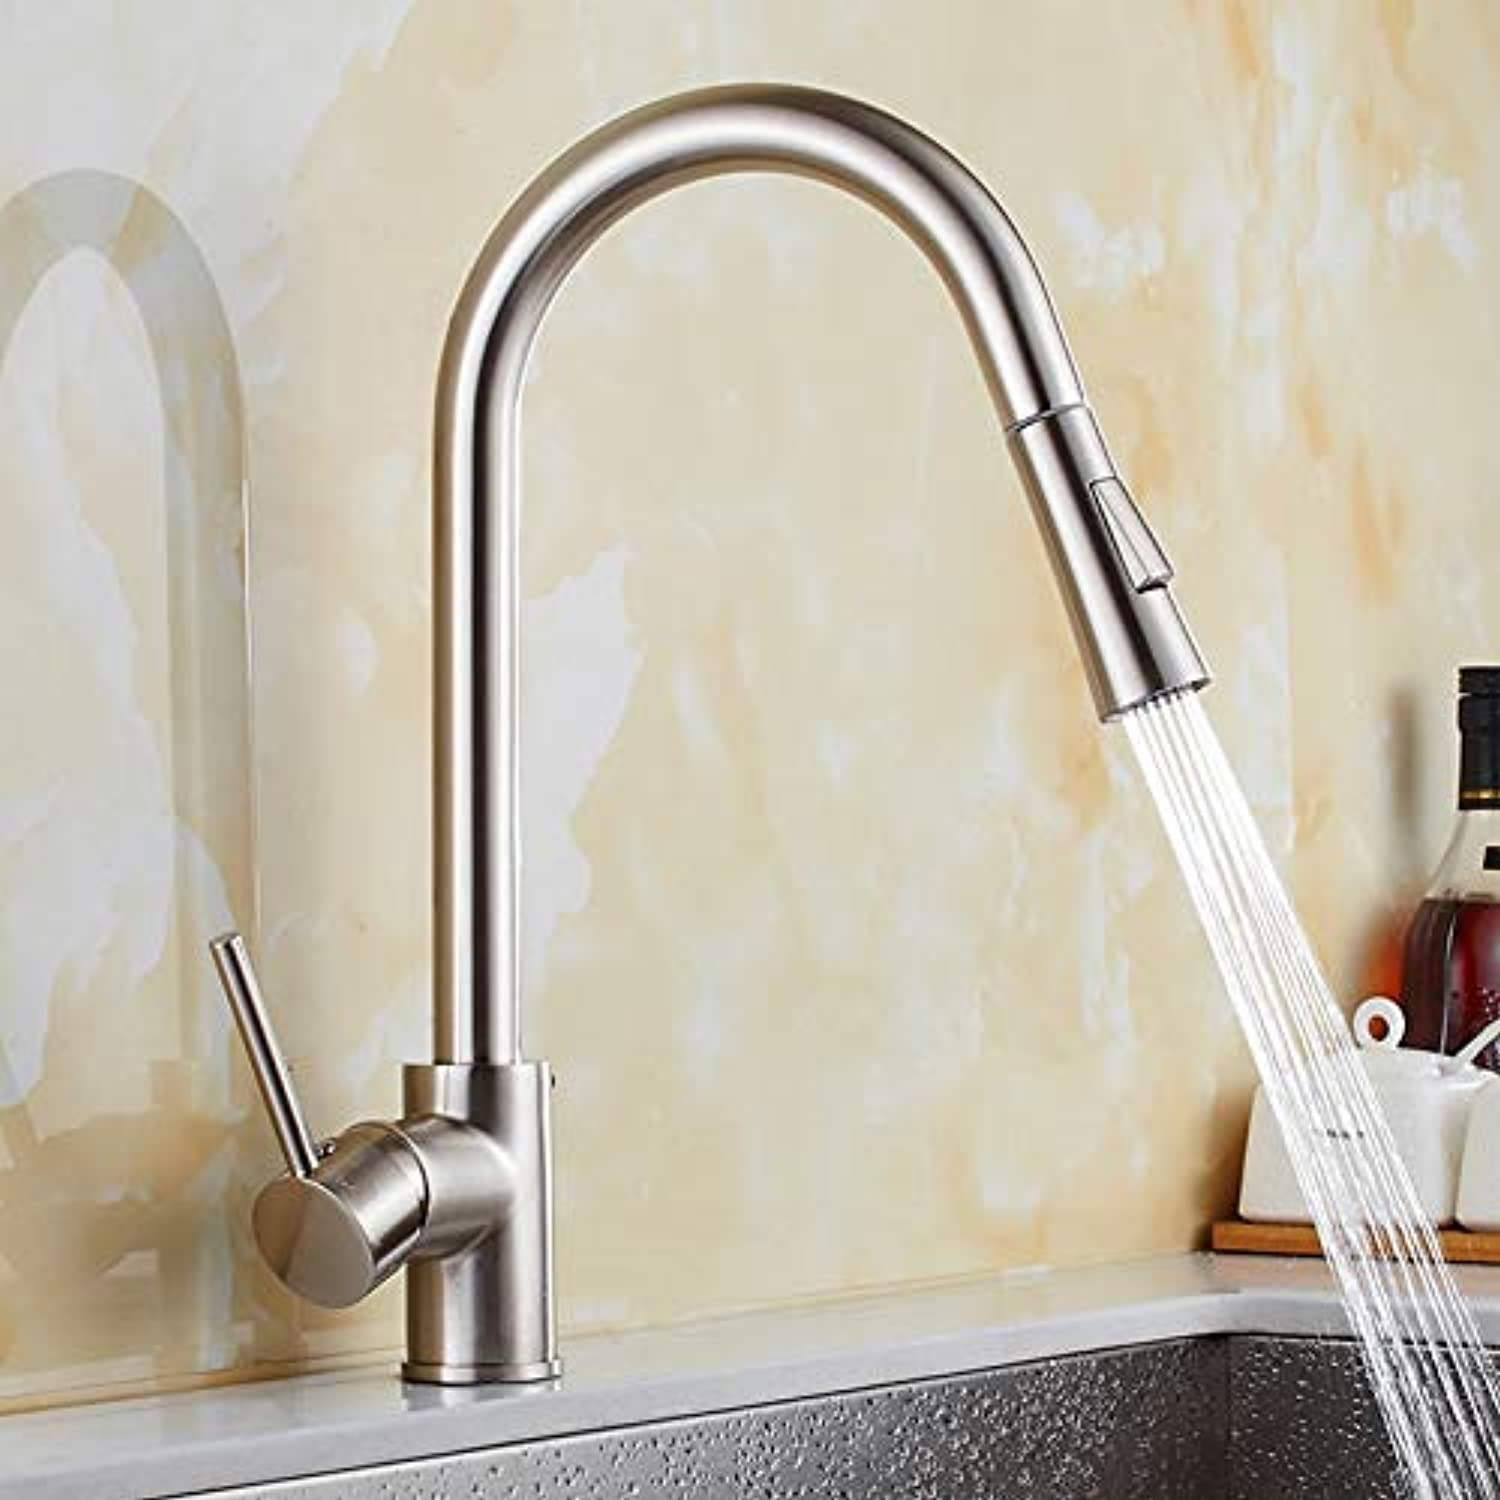 Decorry Senducs Pull Down Kitchen Sink Faucet with Brushed Kitchen Sink Mixer Tap for Fashion Hot Cold Kitchen Faucet Brass Water Taps,Brushed